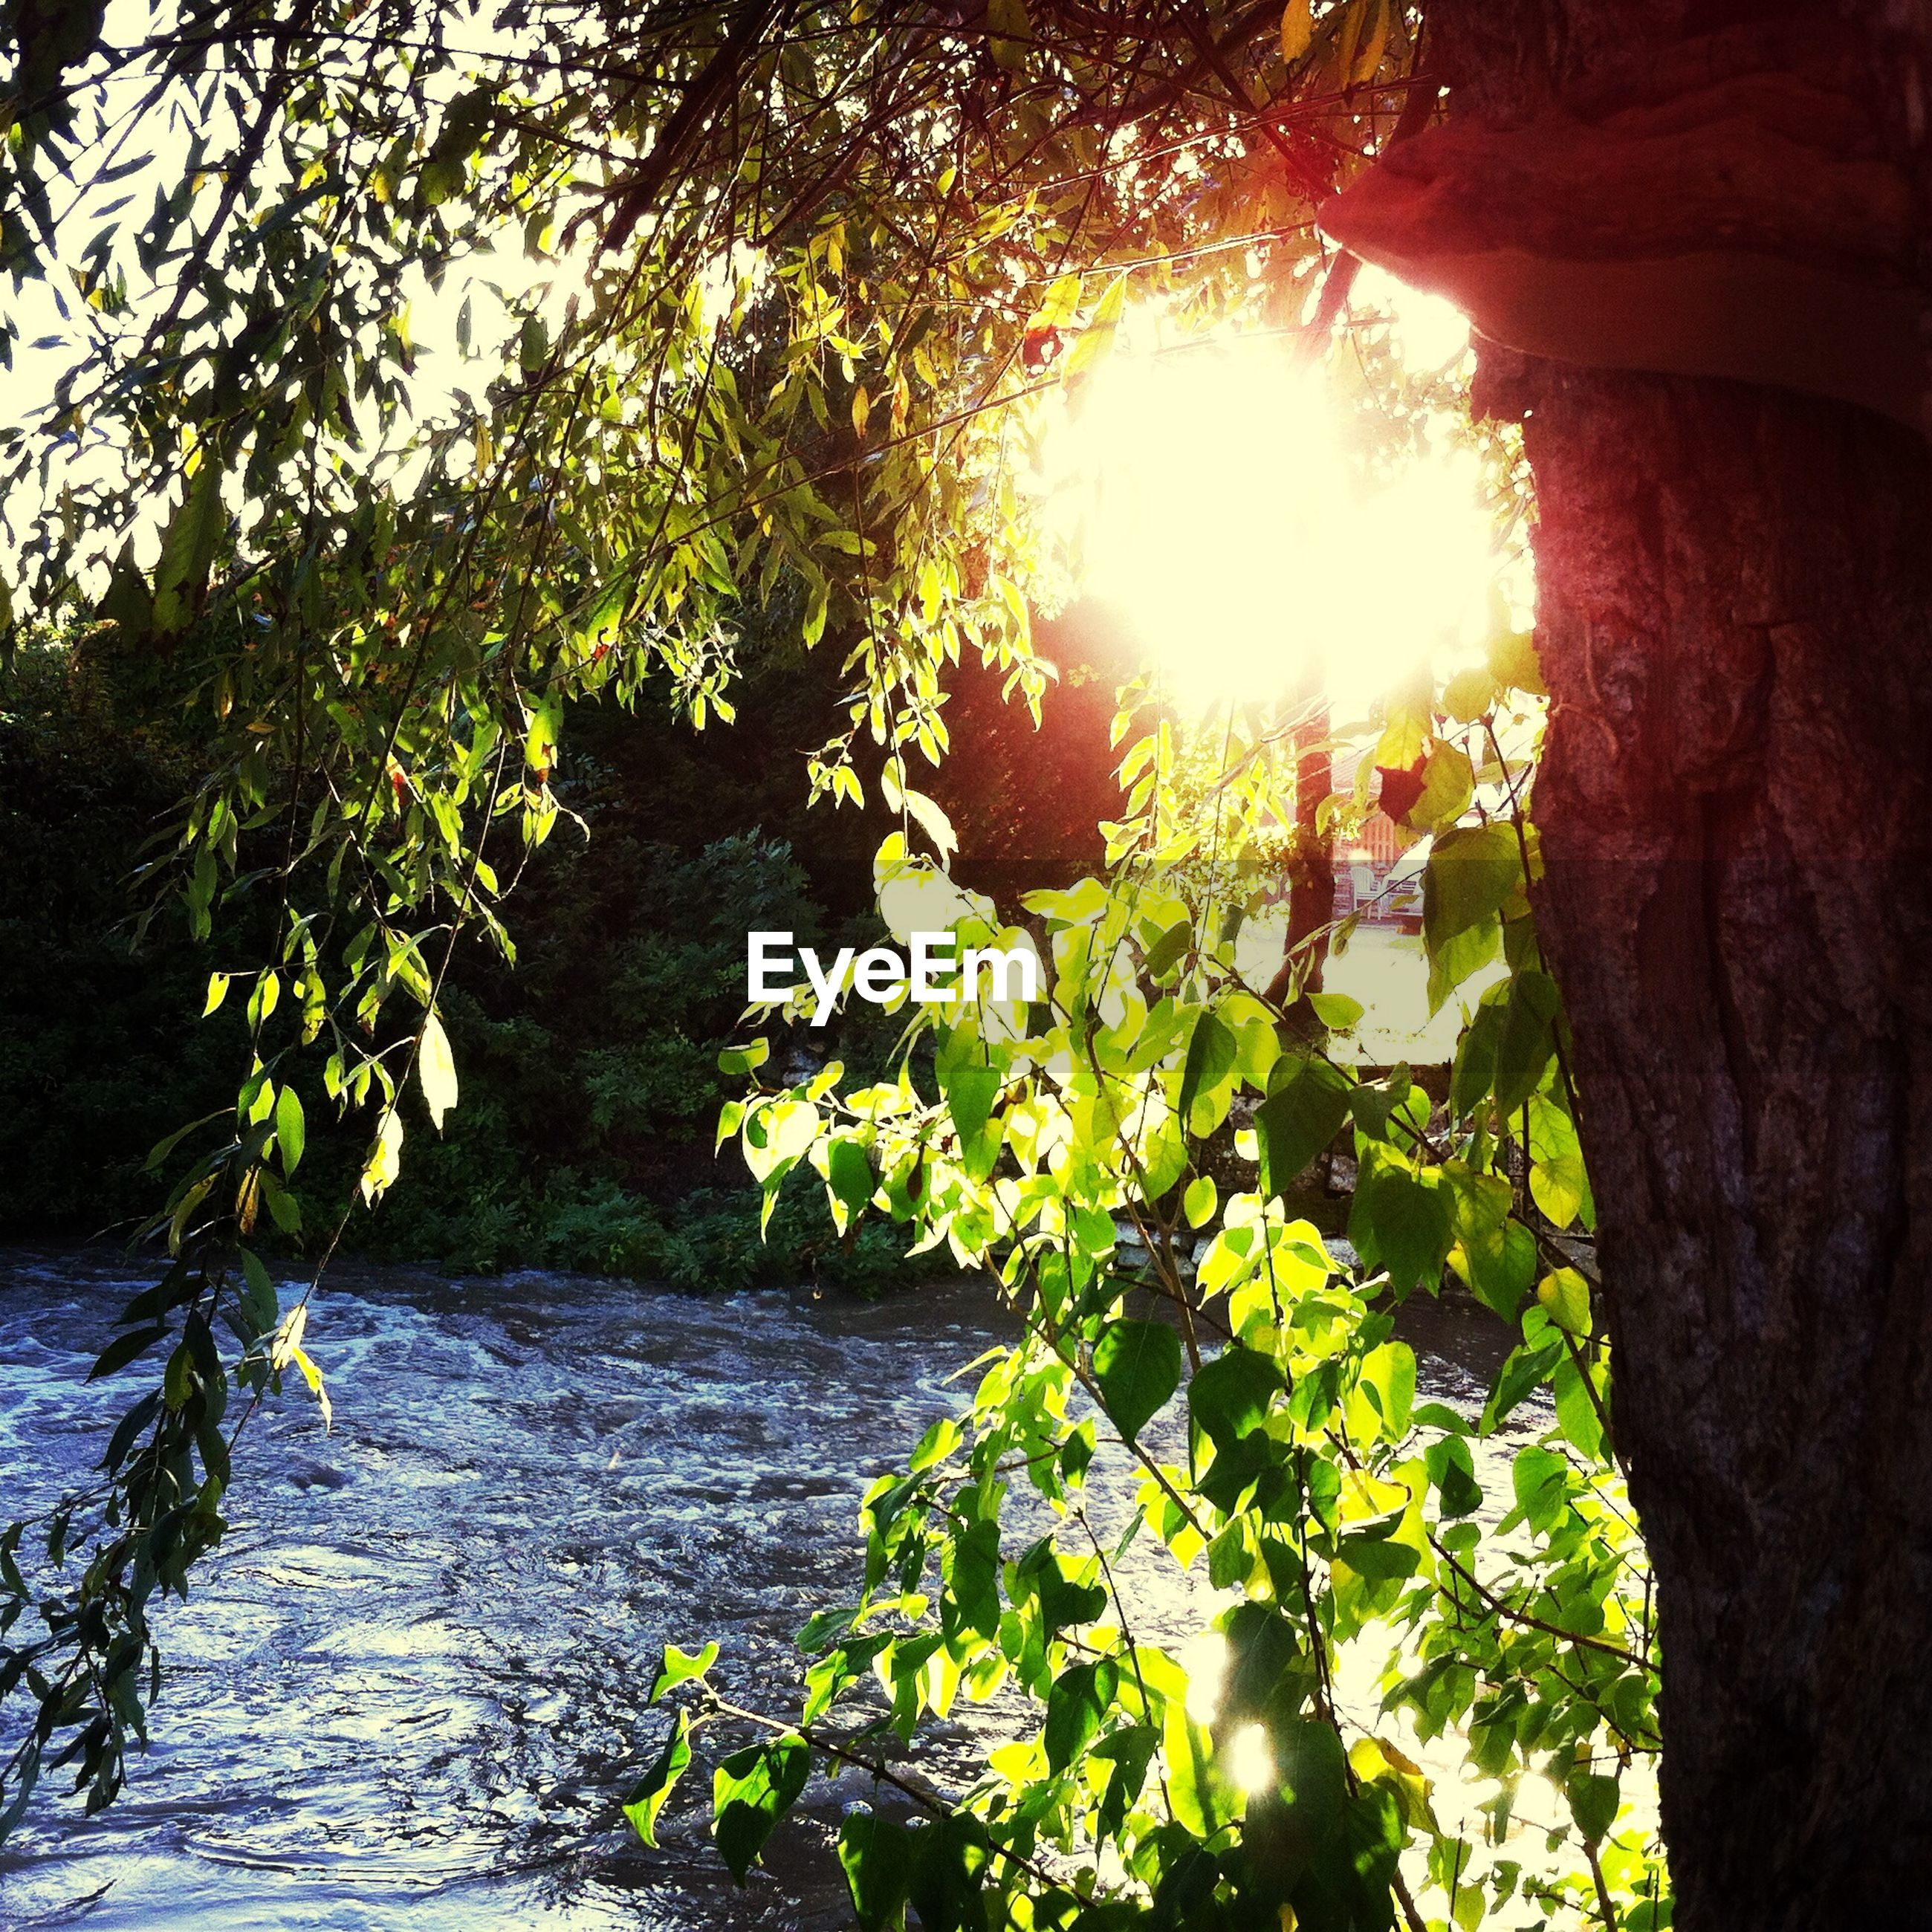 sun, growth, tree, sunlight, sunbeam, lens flare, nature, plant, beauty in nature, tranquility, low angle view, leaf, green color, growing, branch, outdoors, sunny, no people, day, tranquil scene